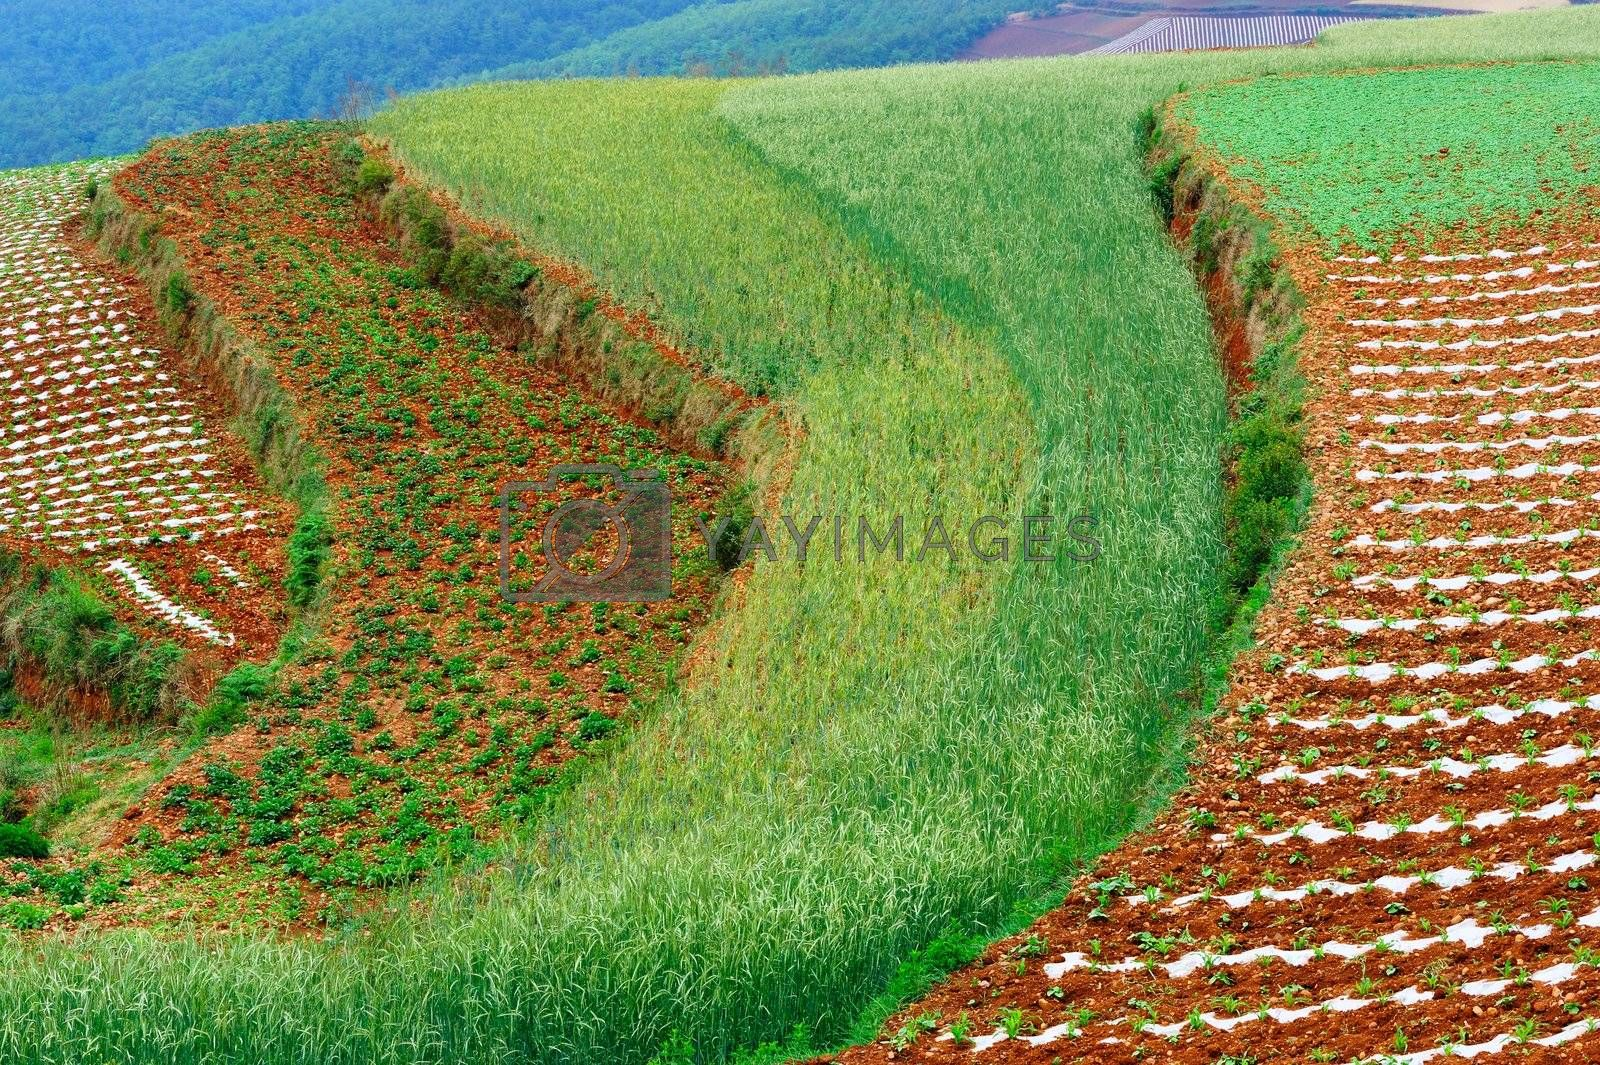 Wheat field landscape in Dongchuan district, Kunming city, Yunnan province of China